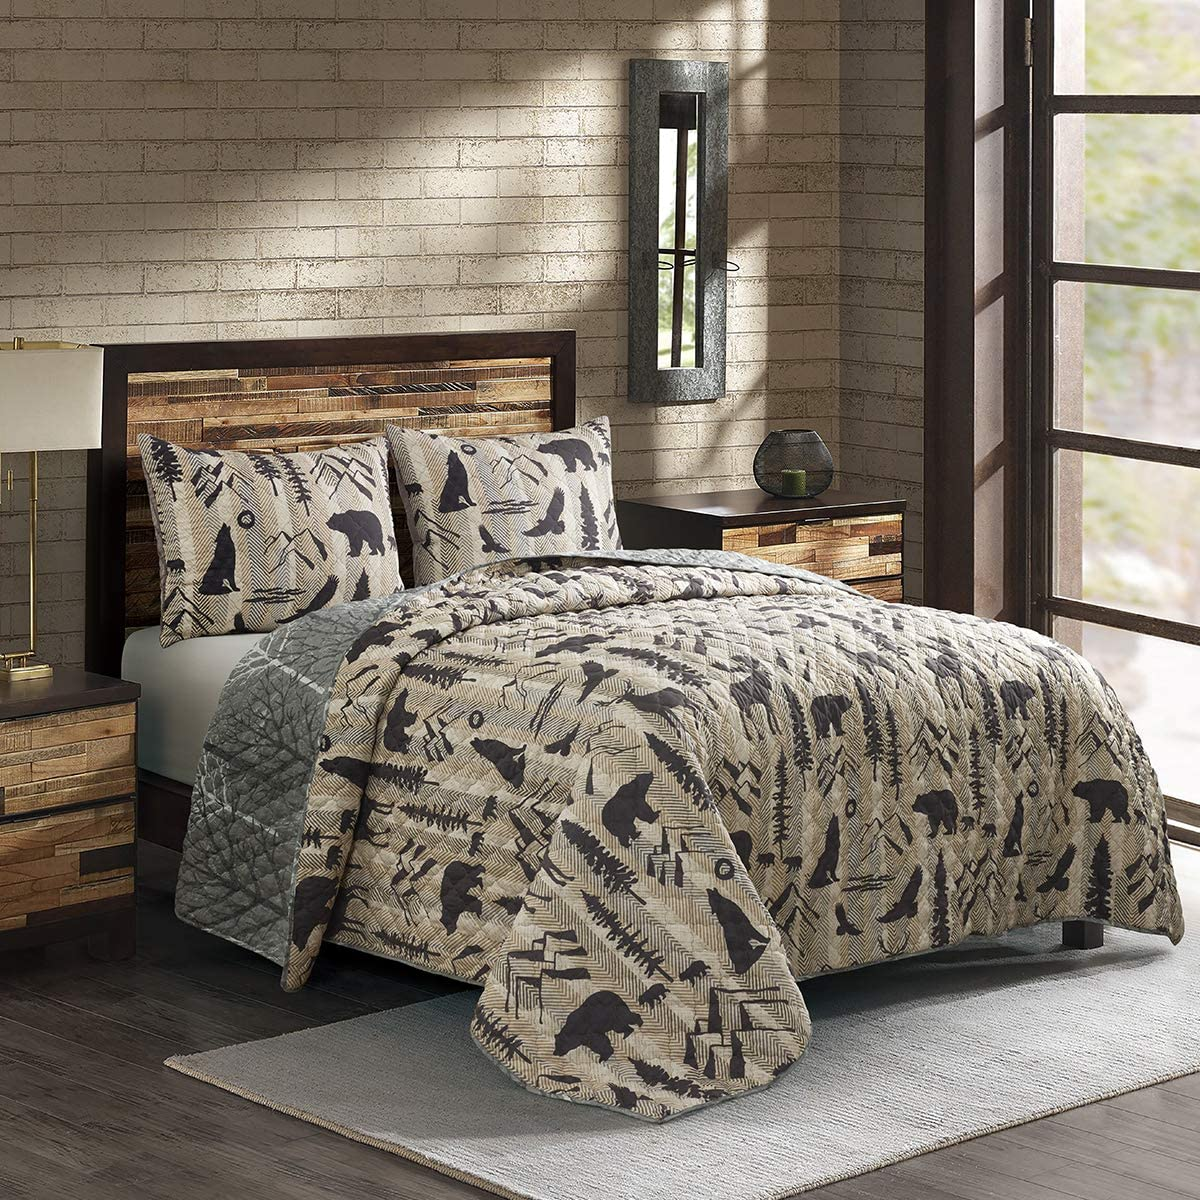 Full / Queen Bedding Set - 3 Piece - Timber by Donna Sharp - Lodge Quilt Set with Full/Queen Quilt and Two Standard Pillow Shams - Machine Washable